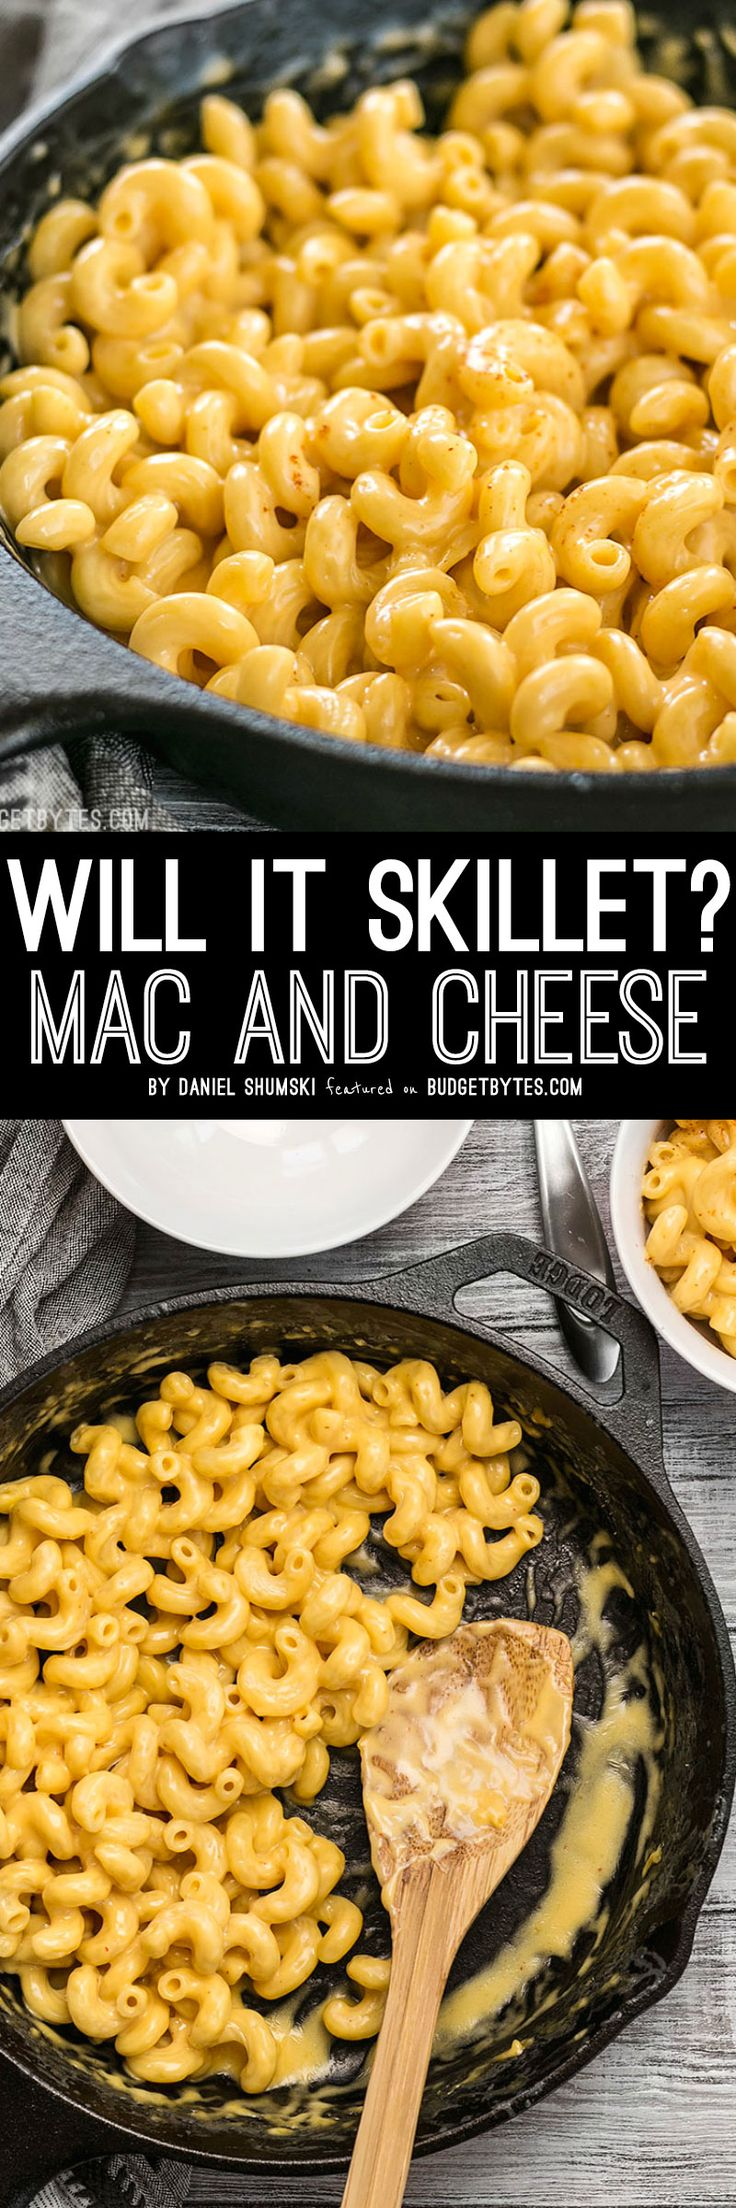 This incredible roux-less mac and cheese is rich, creamy, and only requires seven ingredients. Perfect for last minute weeknight dinners!